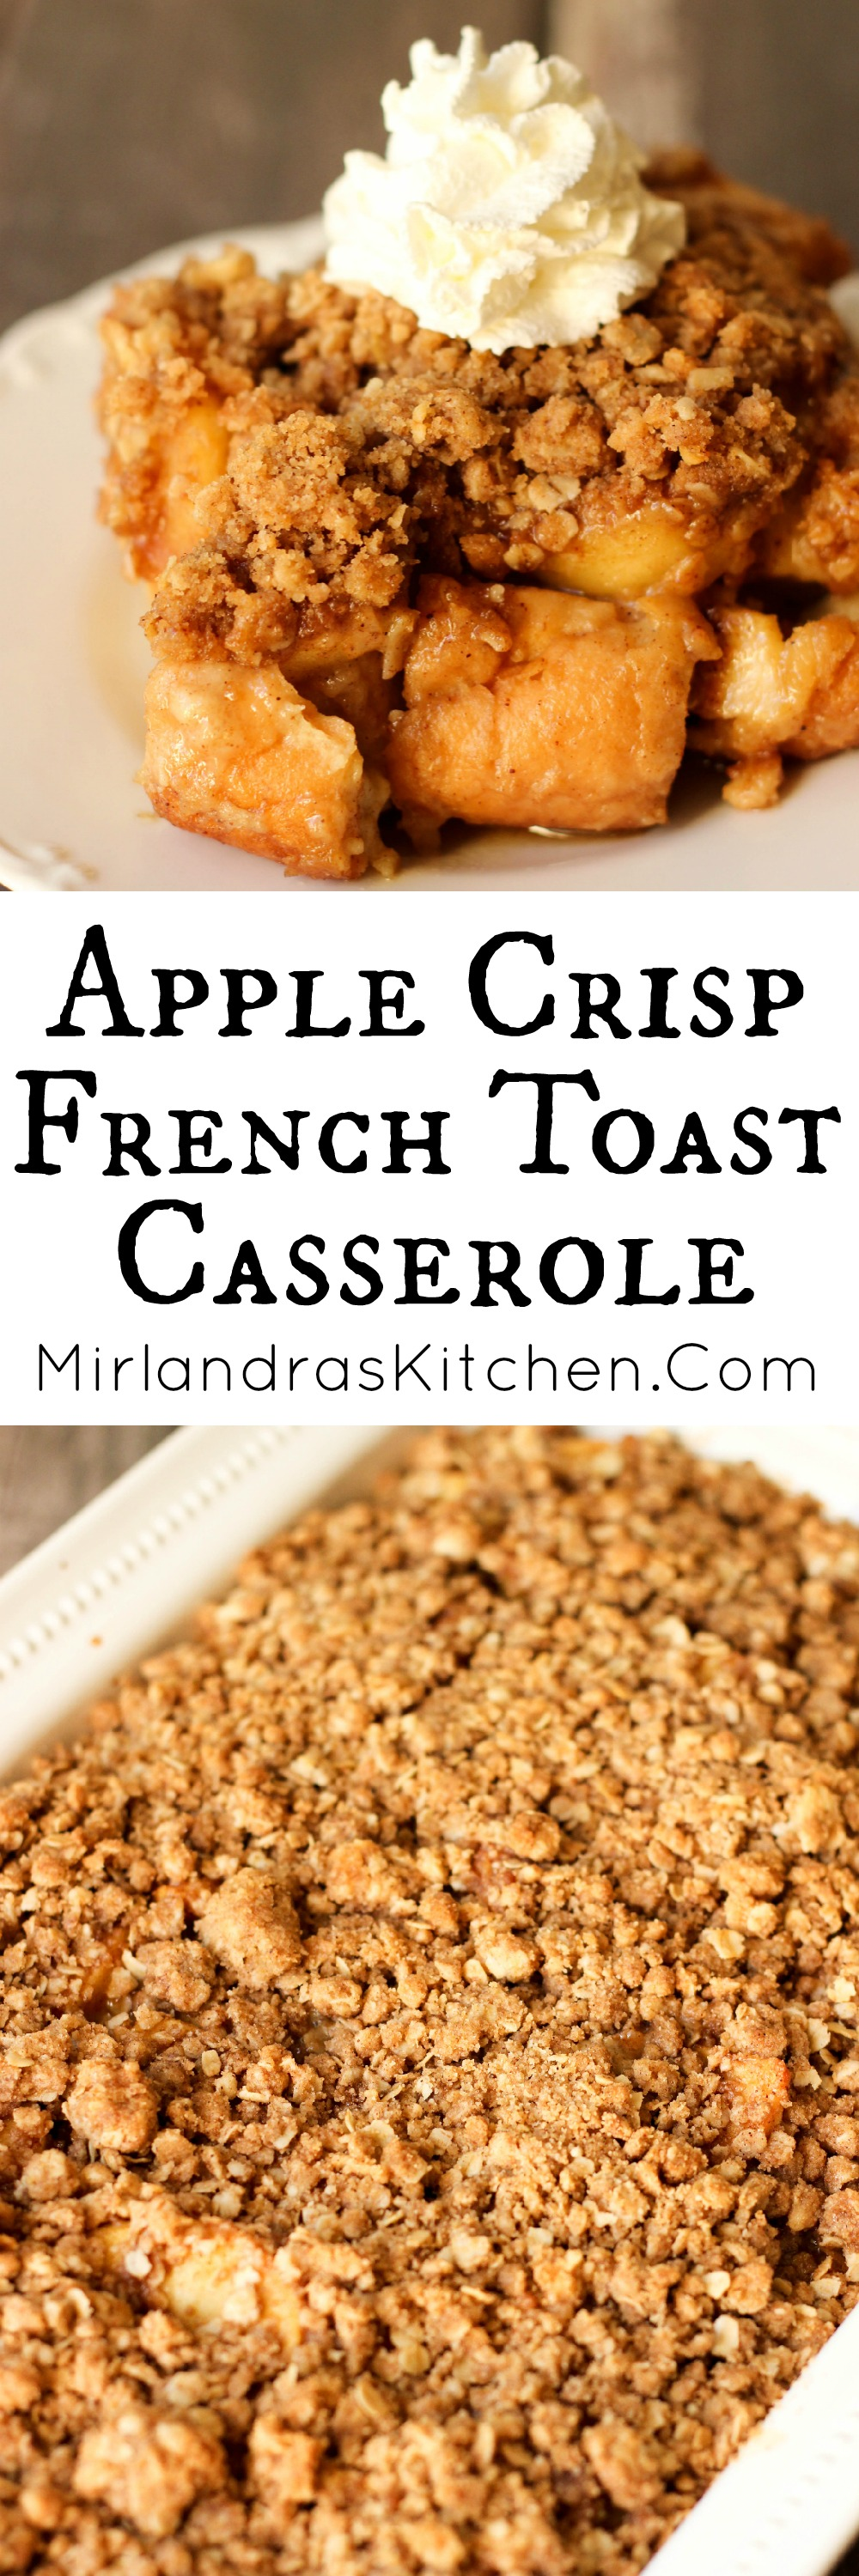 Apple Crisp French Toast Casserole is a yummy french toast smothered in buttery apples and crumbly crisp topping.  Make it the night before or same day.